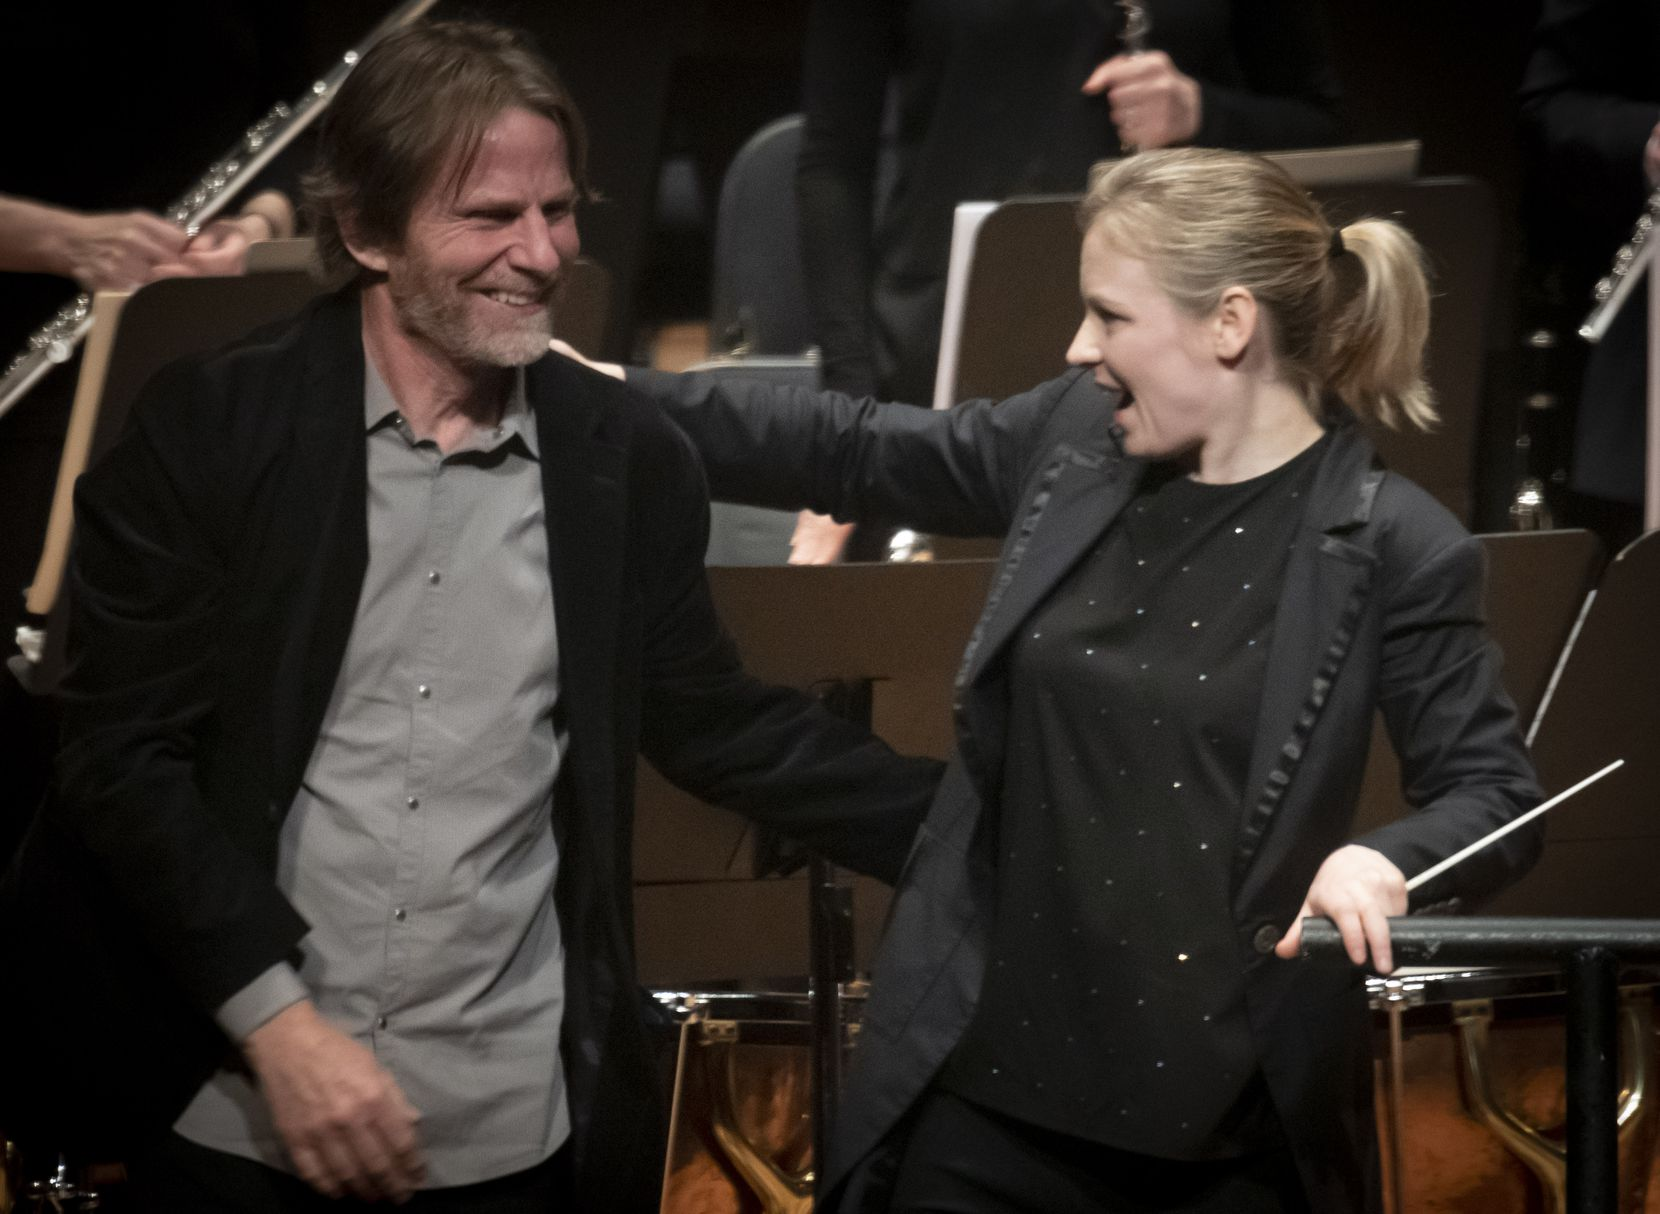 Composer Steven Mackey and the Dallas Symphony Orchestra's new principal guest conductor Gemma New congratulate each other after the world premiere of Mackey's Timpani Comcerto at the Meyerson Symphony Center on November 8, 2019.